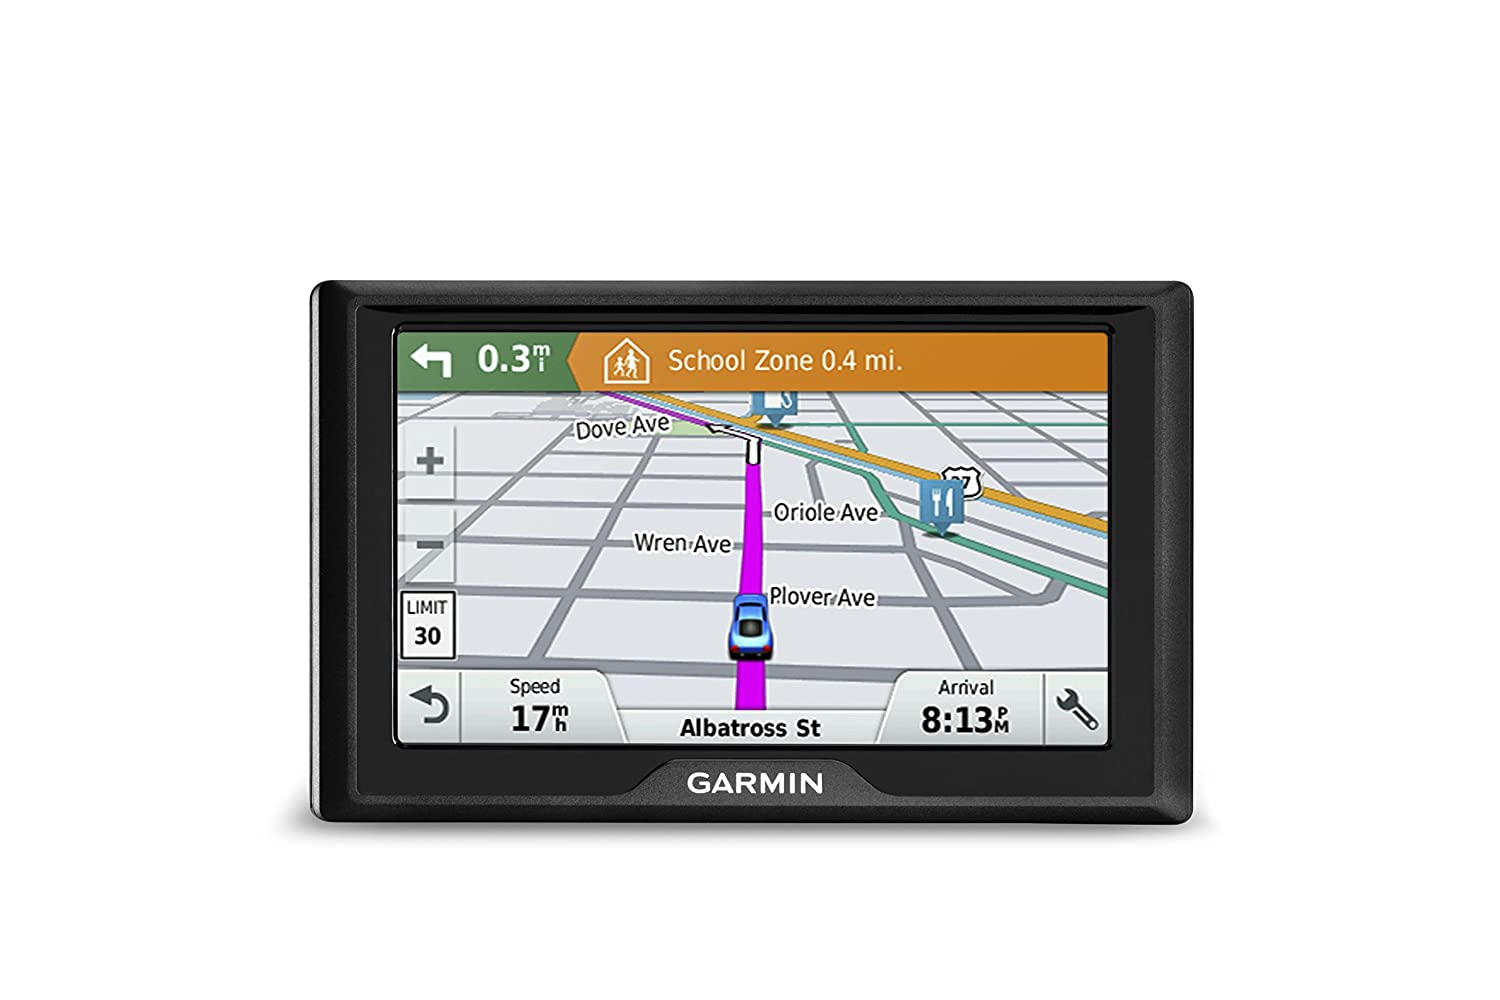 amazoncom garmin drive 50 usa lm gps navigator system with lifetime maps spoken turn by turn directions direct access driver alerts and foursquare